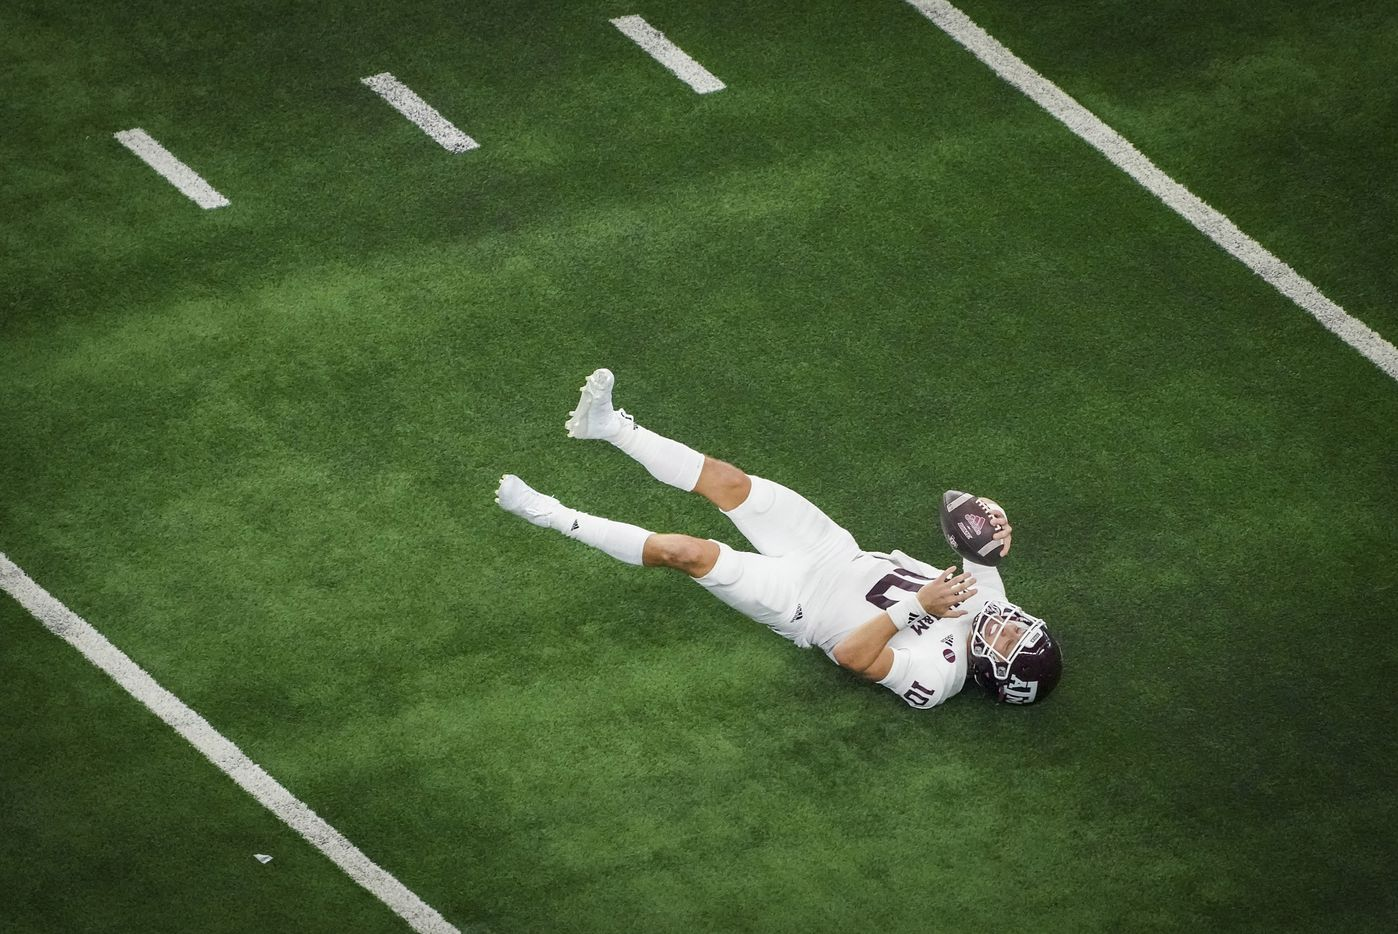 Texas A&M quarterback Zach Calzada (10) slips to the turf during the second half of an NCAA football game against Arkansas at AT&T Stadium on Saturday, Sept. 25, 2021, in Arlington. Arkansas won the game 20-10.